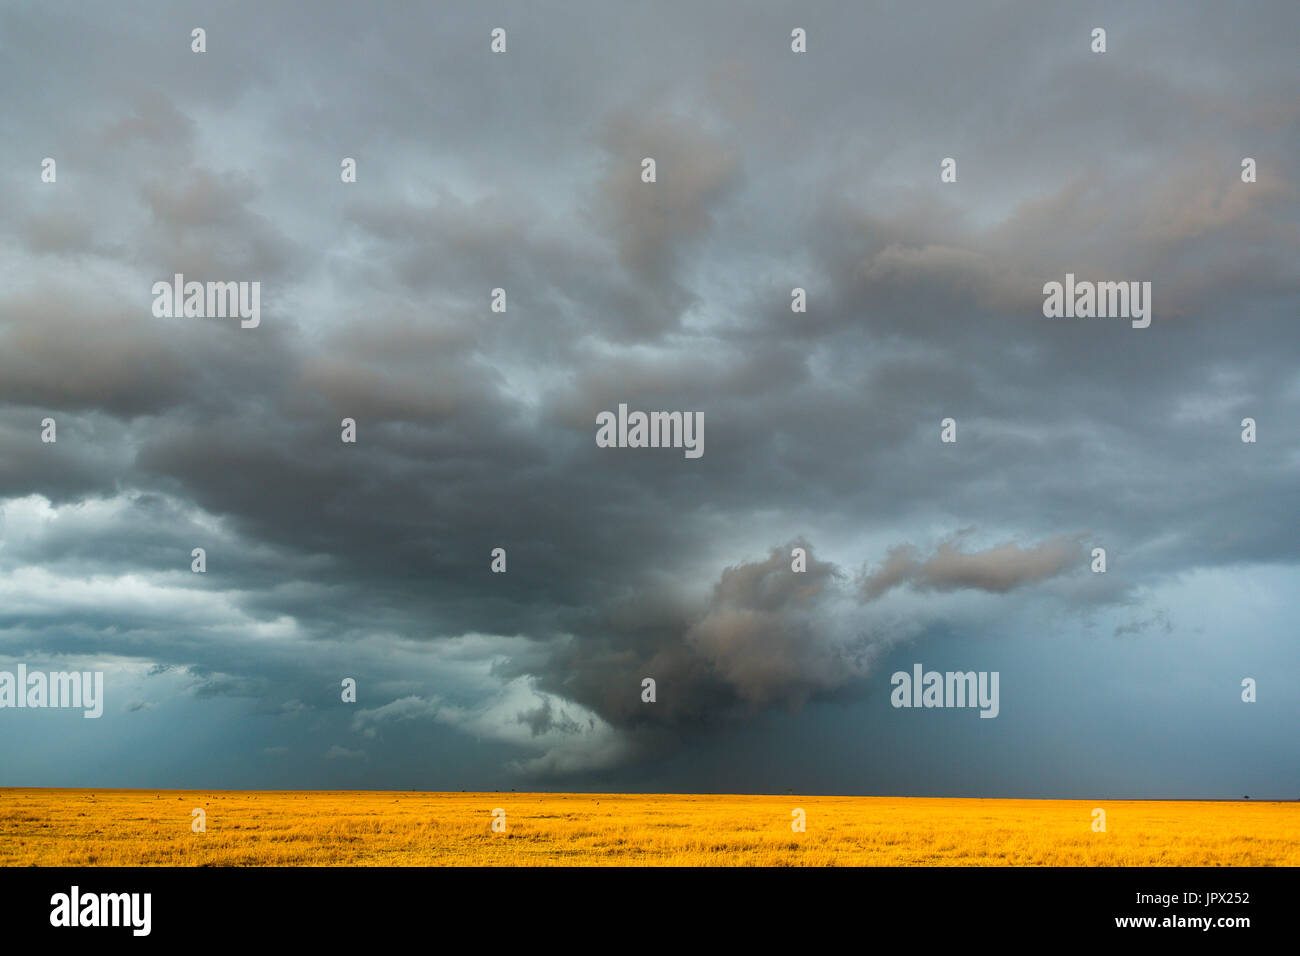 Clouds and storm in dry season - Masai Mara Kenya - Stock Image